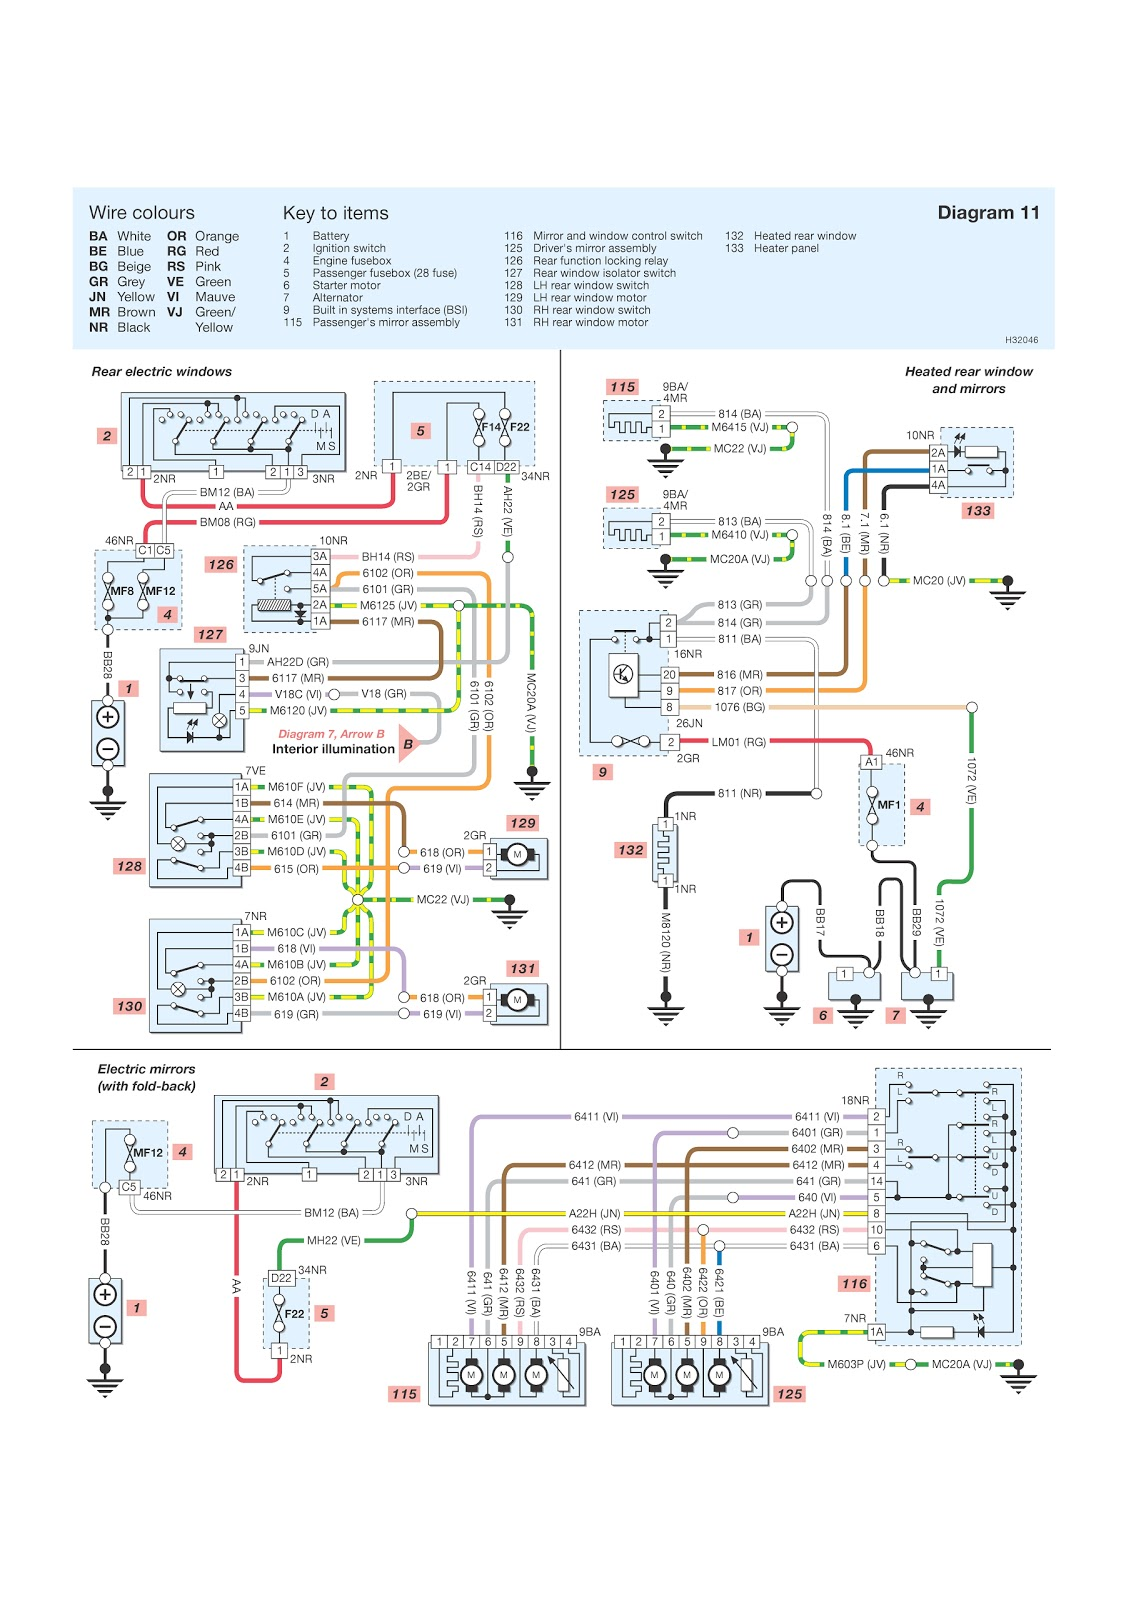 Wiring Diagram Nissan Leaf Trusted Diagrams Peugeot 206 A C Electrical 1991 Maxima